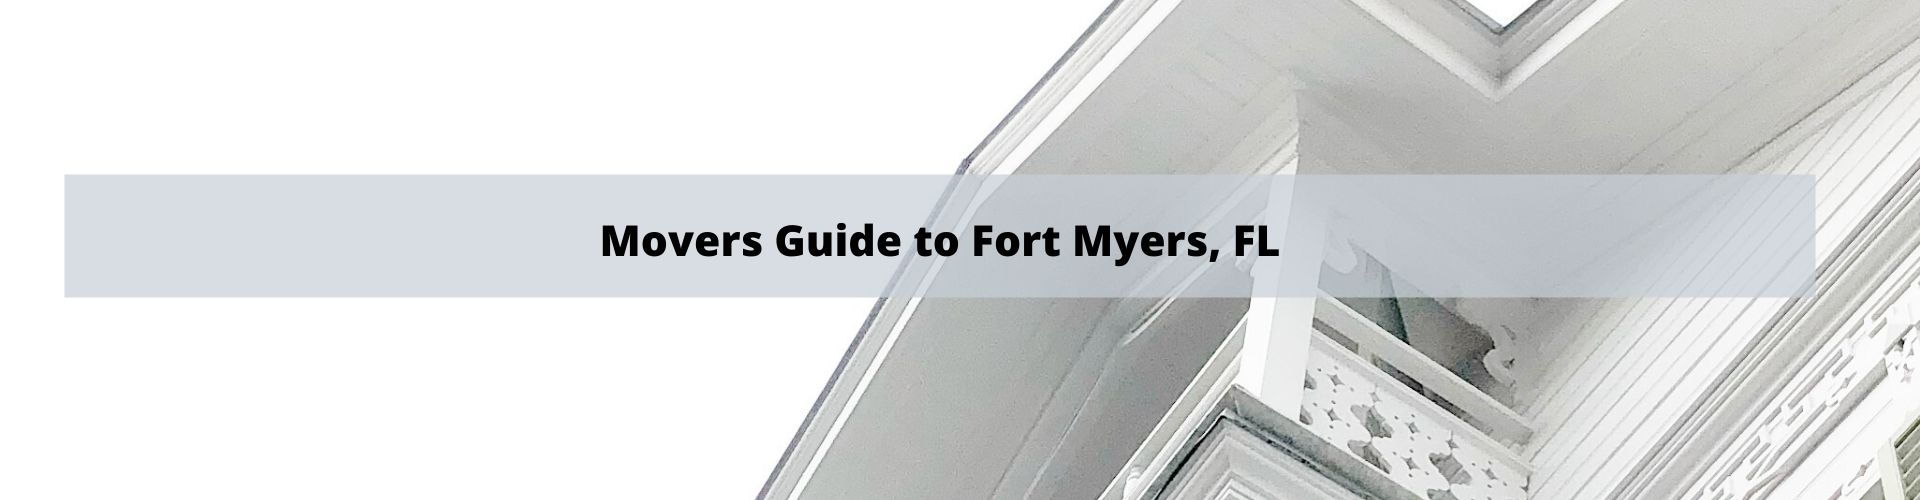 movers guide to Fort Myers